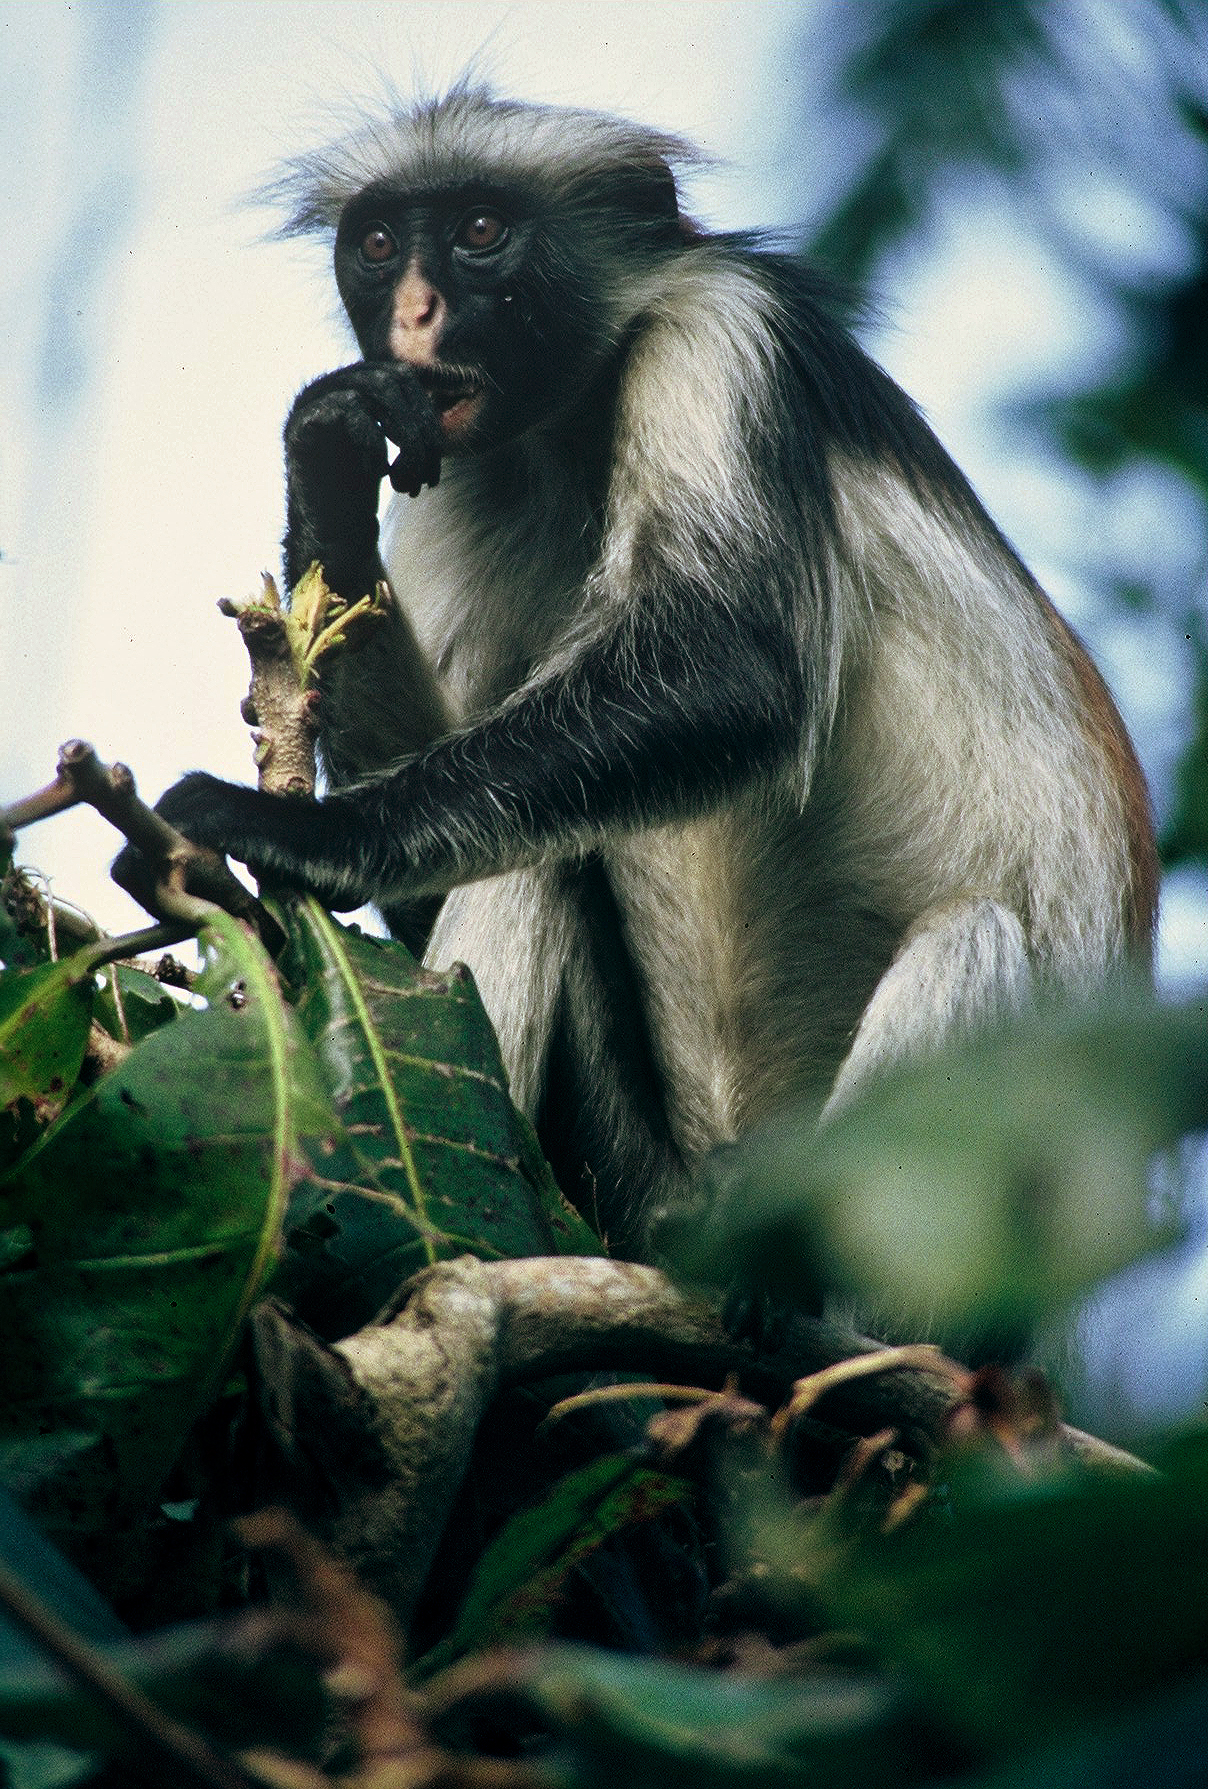 ASTONISHED RED COLOBUS (Procolobus kirkii)